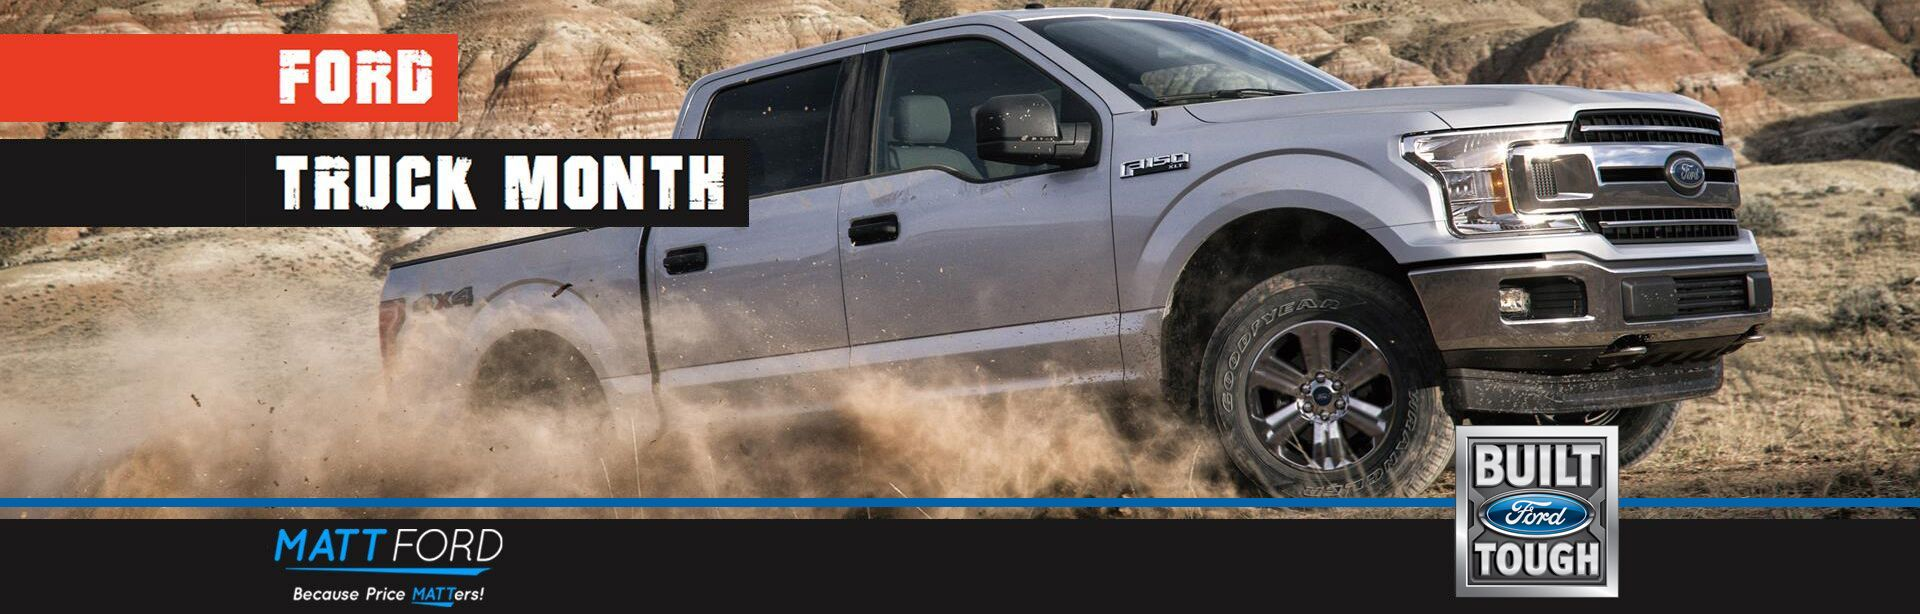 Ford Truck Month at Matt Ford